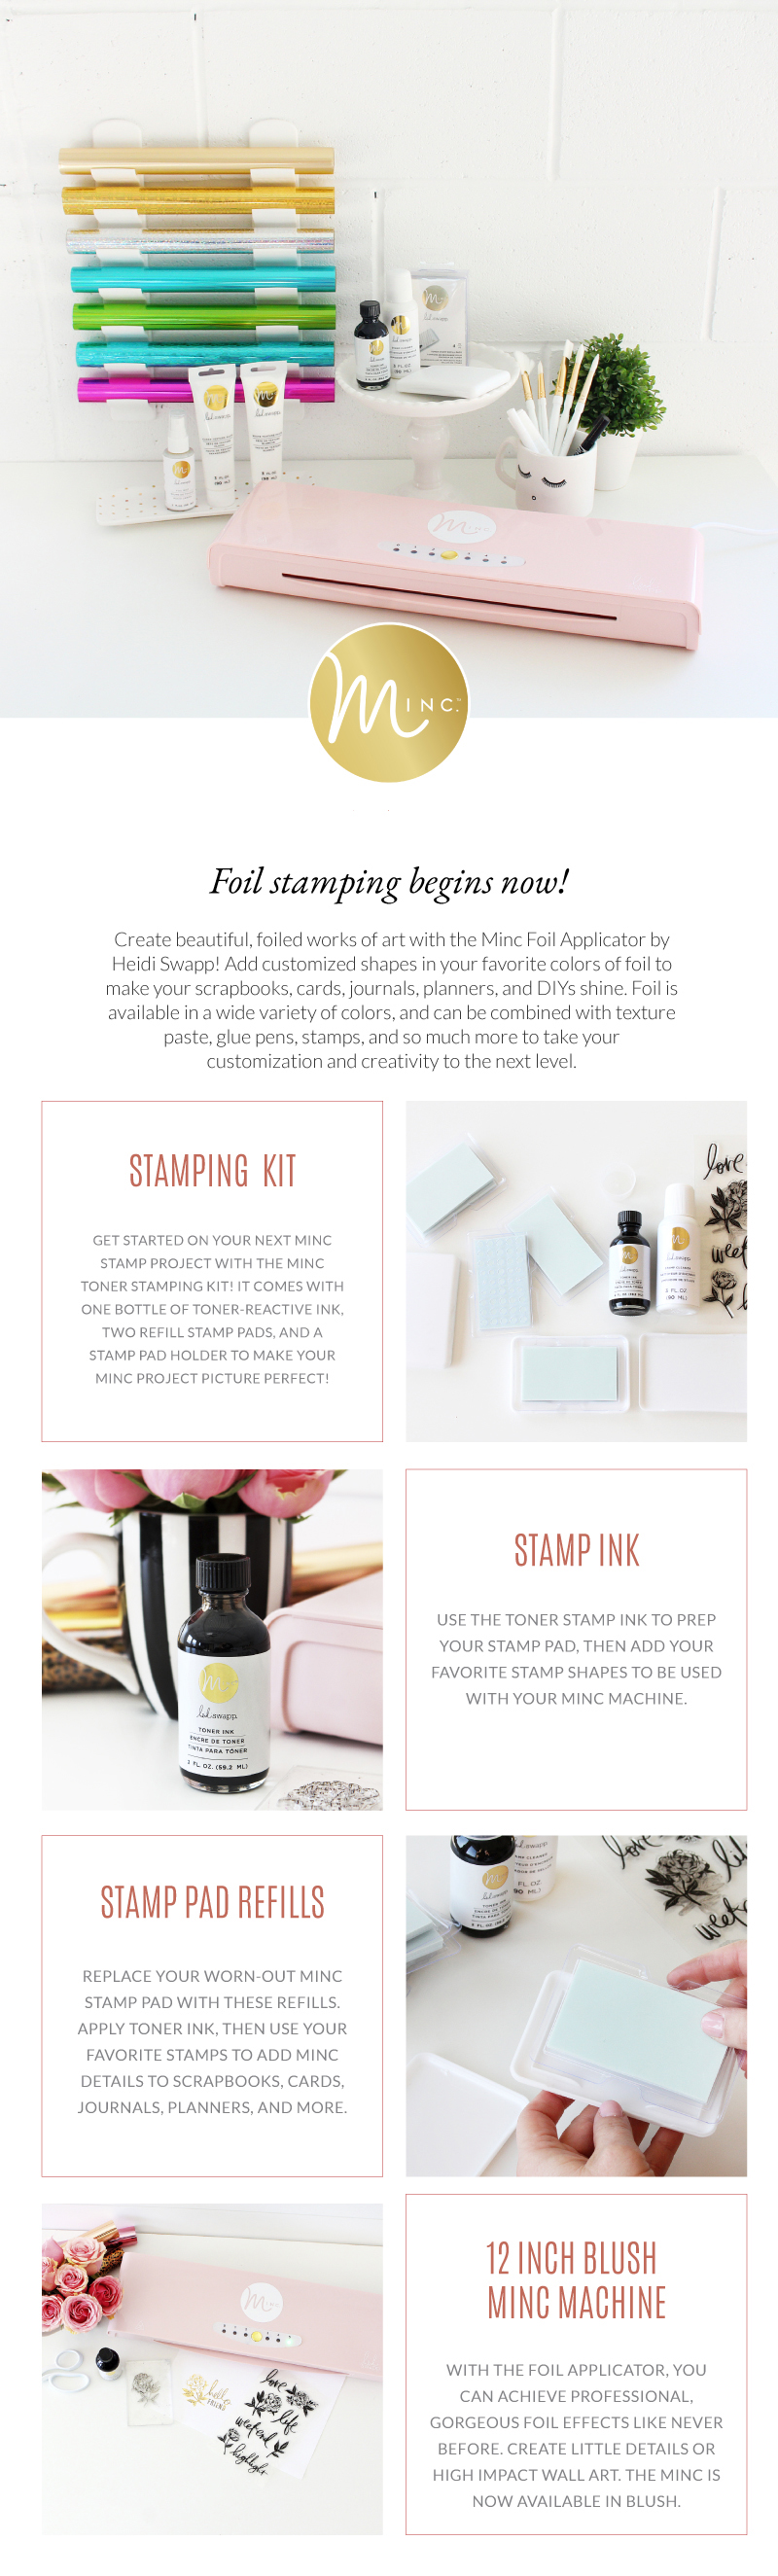 Introducing Heidi Swapp MINC Stamping in 2020 | @heidiswapp